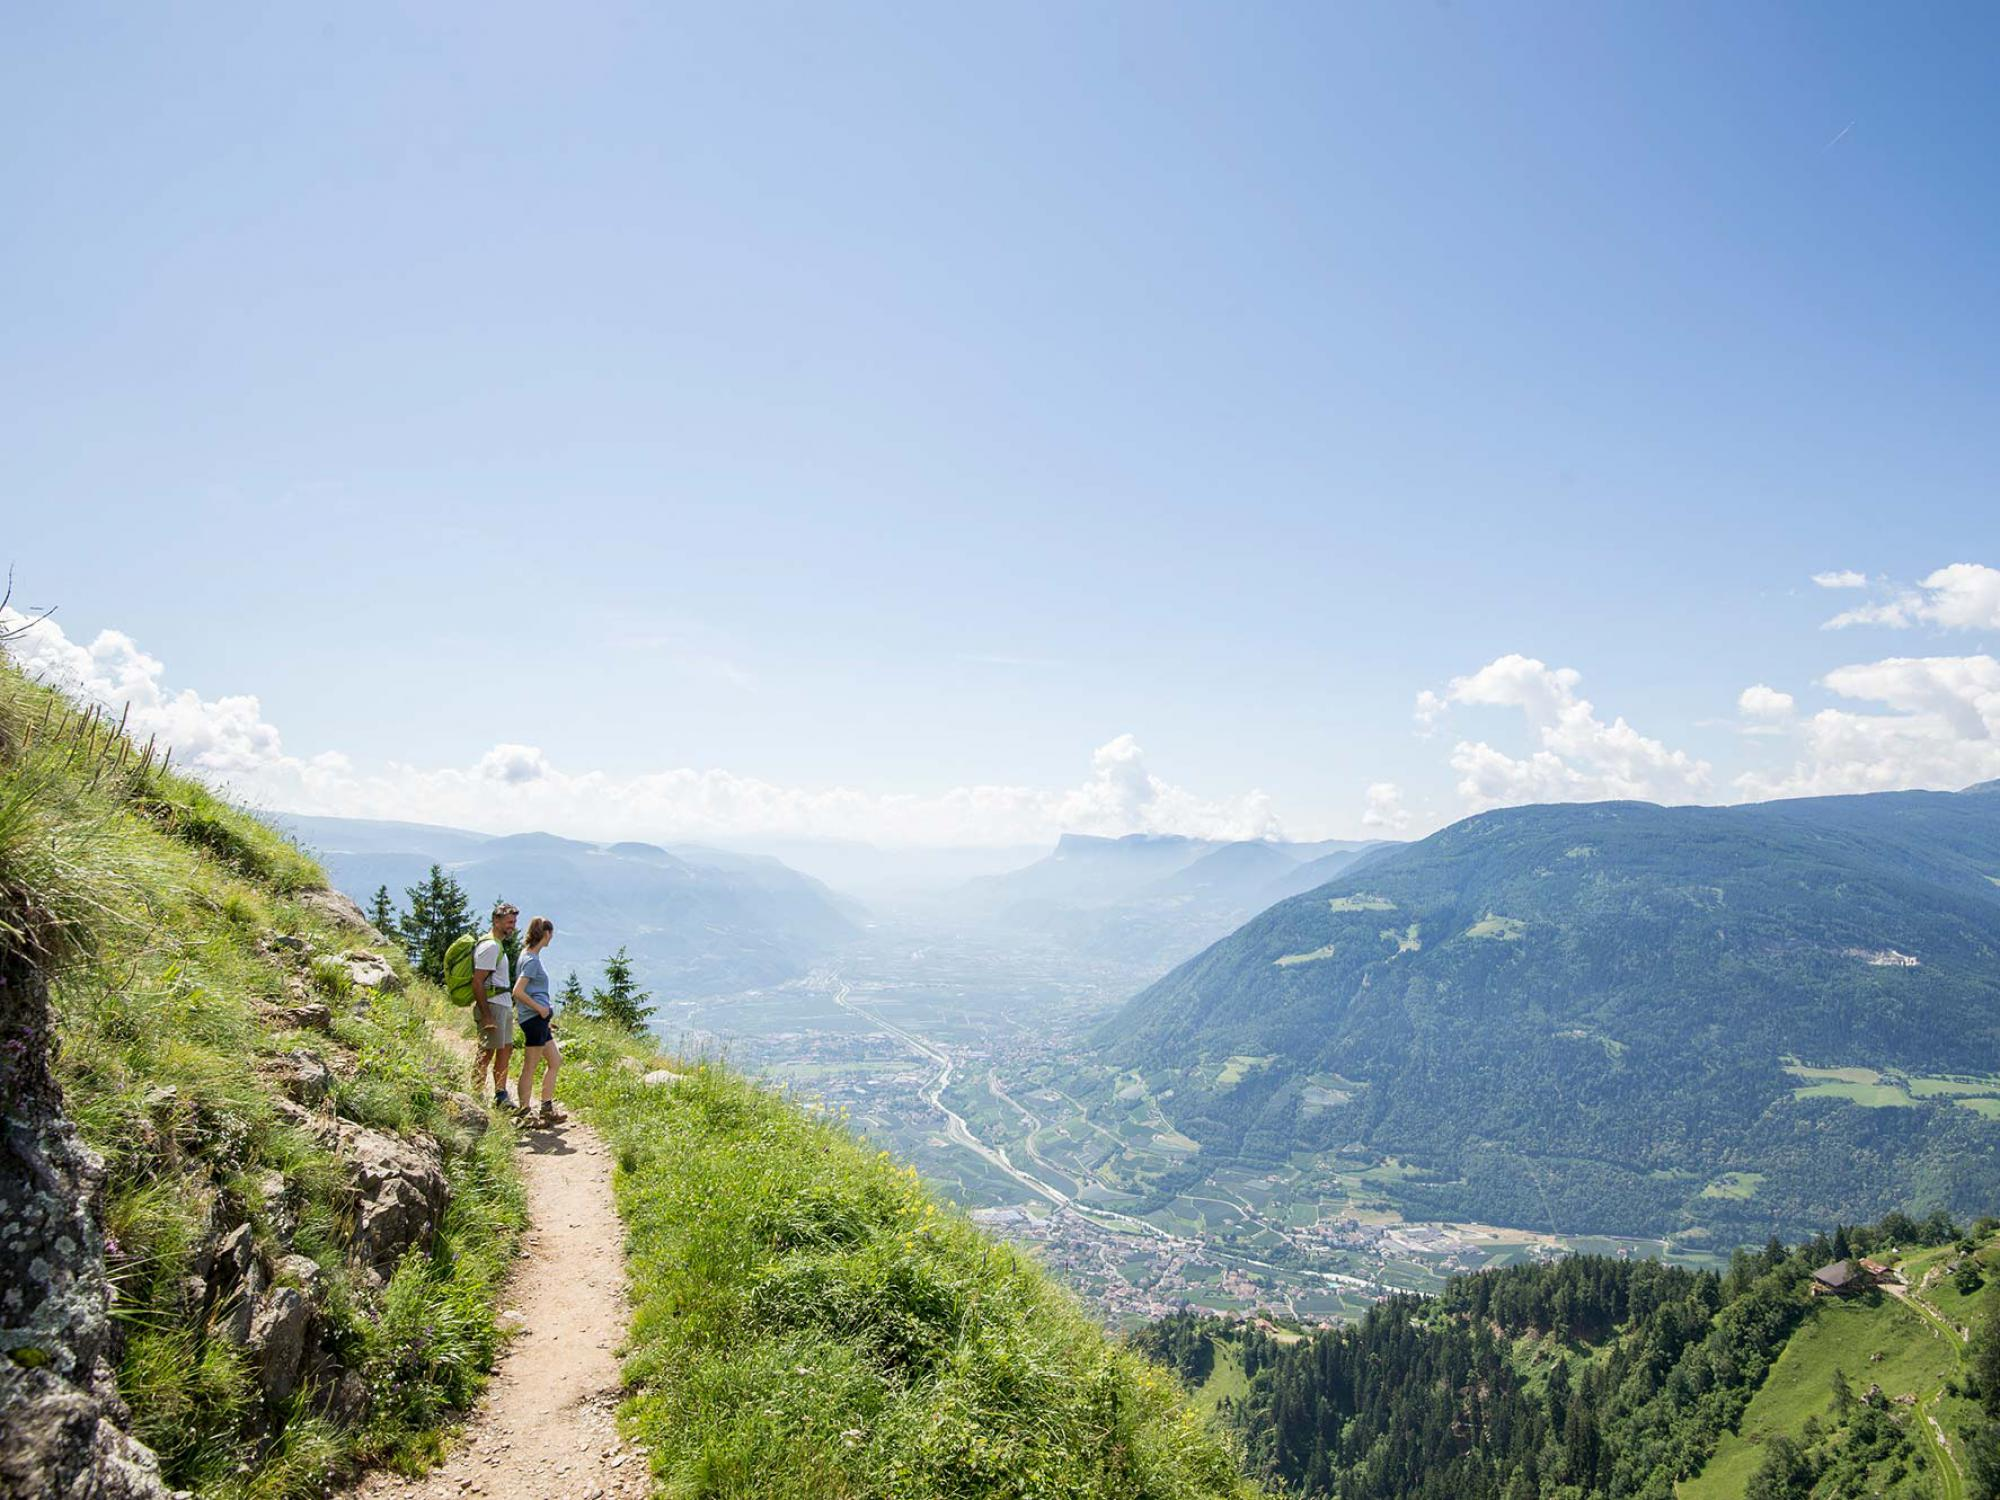 Exciting hikes on the Meraner Höhenweg or Merano High Mountain Trail